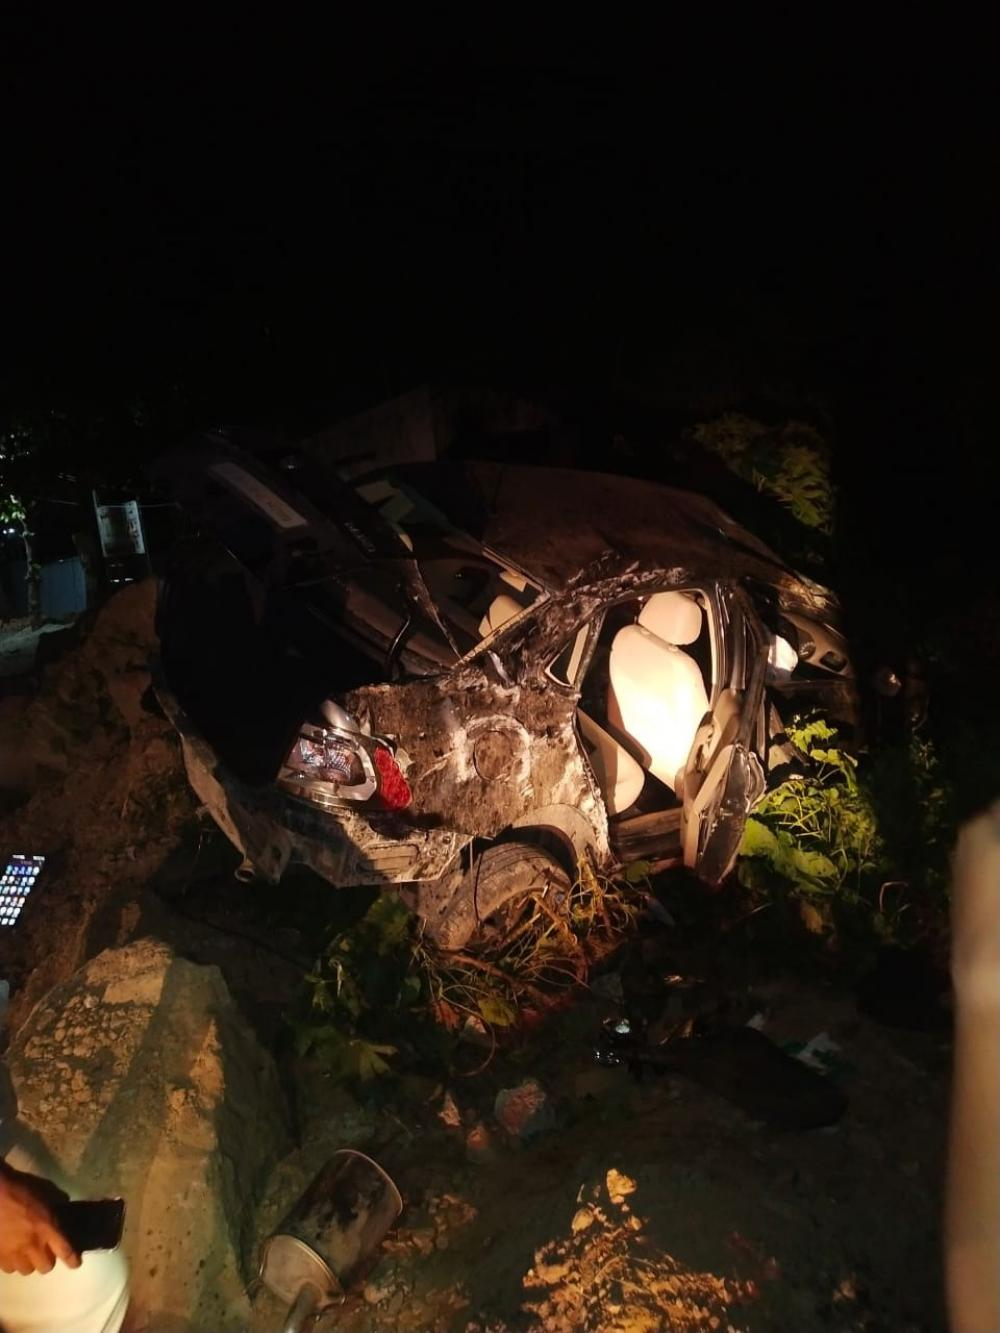 The Weekend Leader - Hyd pub owner, manager among 3 held for drunk driving accident